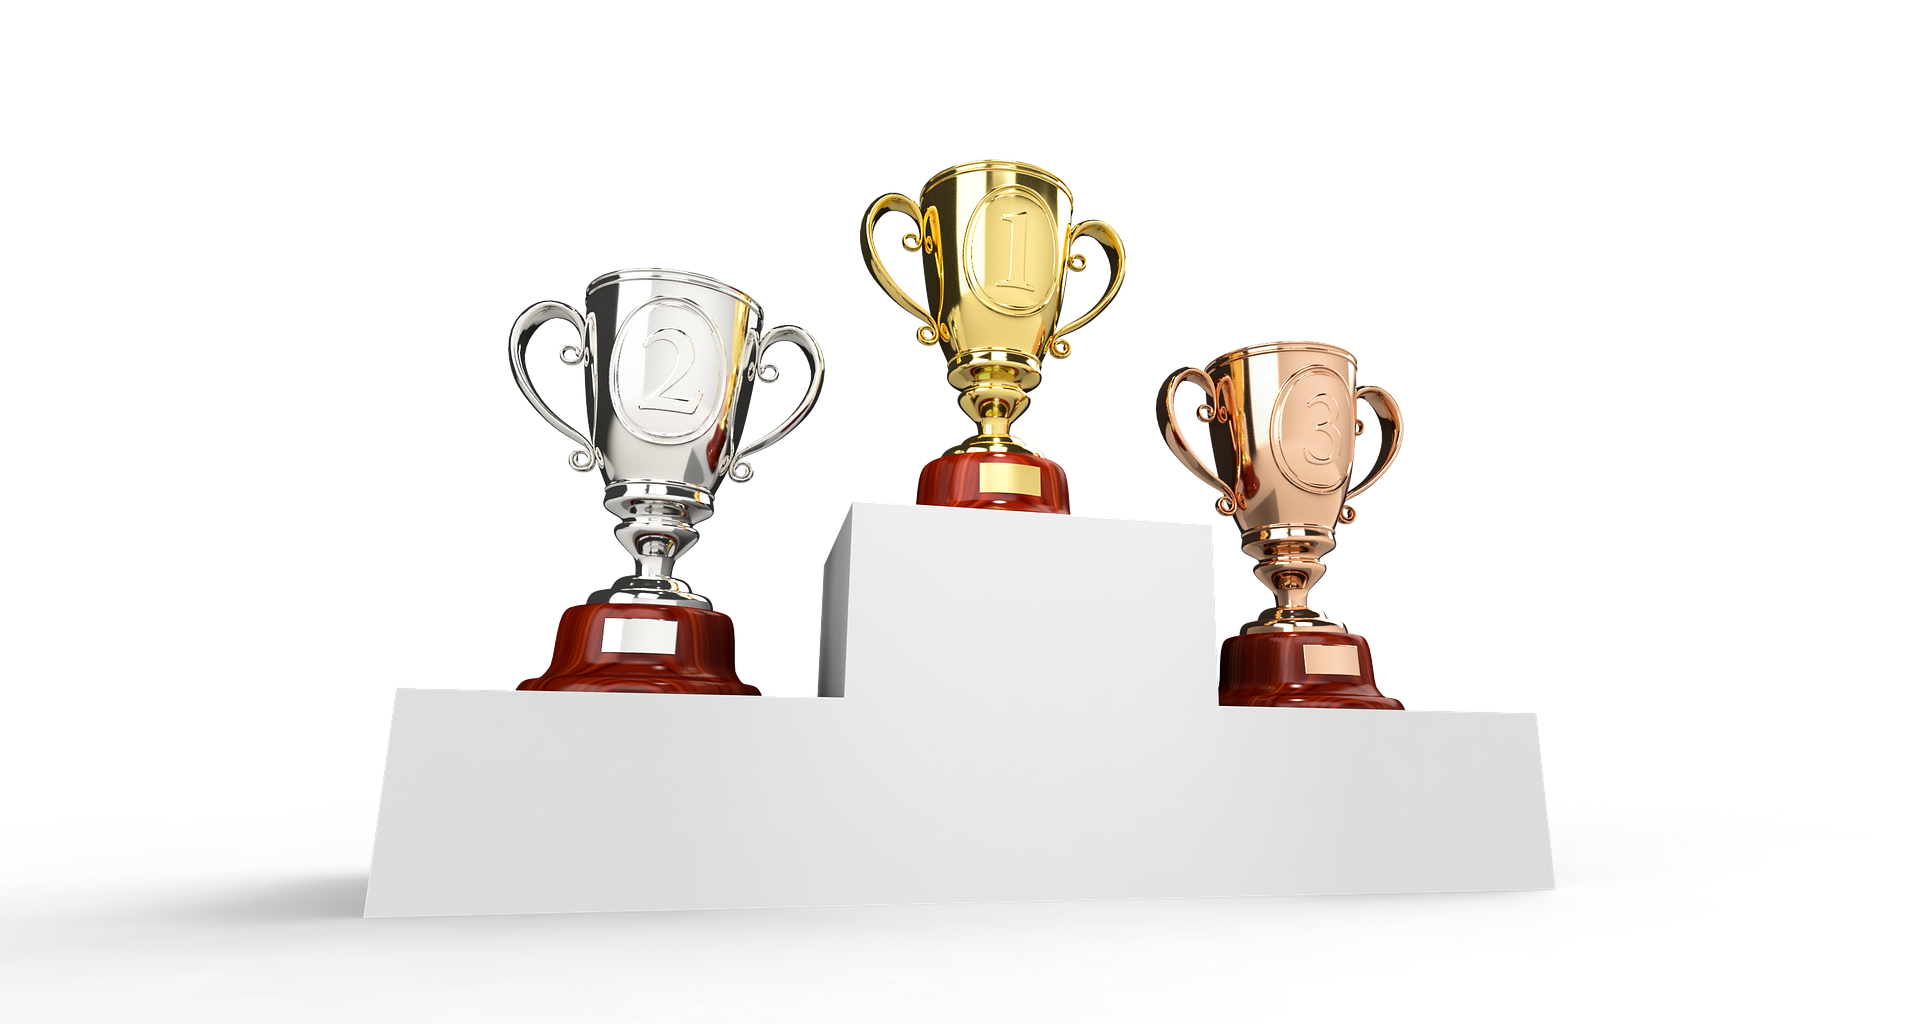 How to Buy Trophy Online at the Best Appraisal Prices | Digital Marketing Services